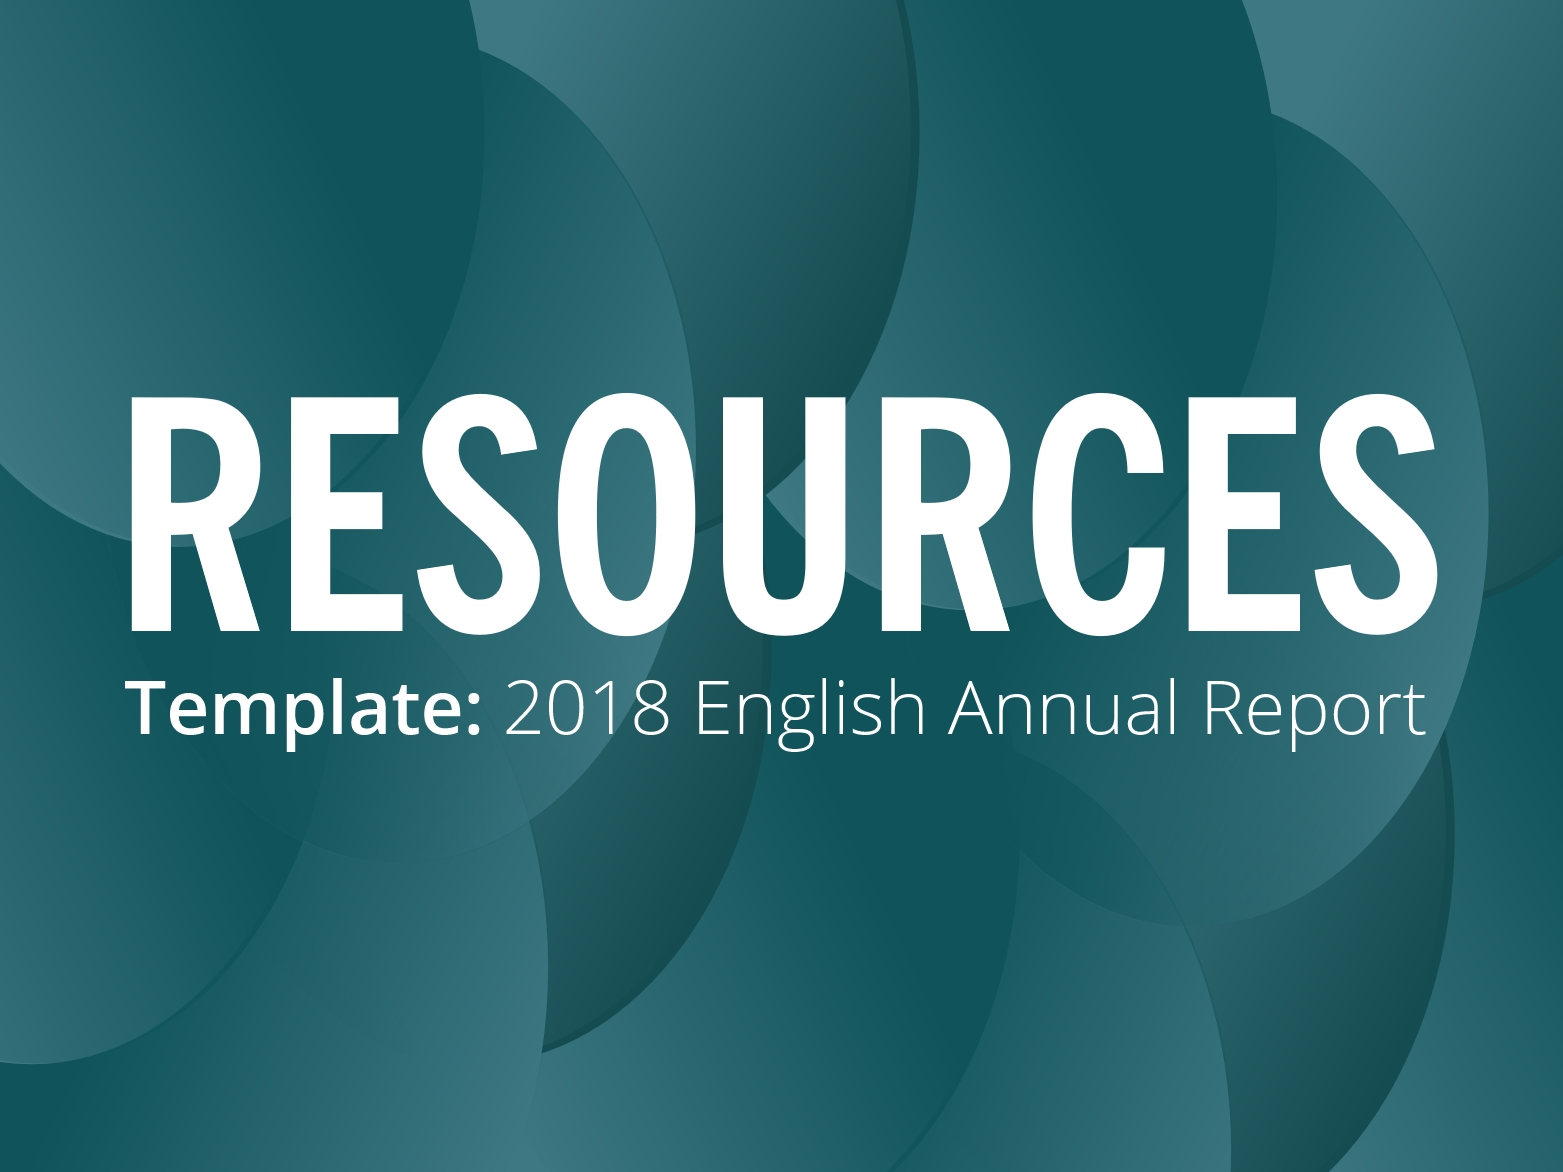 RESOURCE: 2018 English Annual Report Template